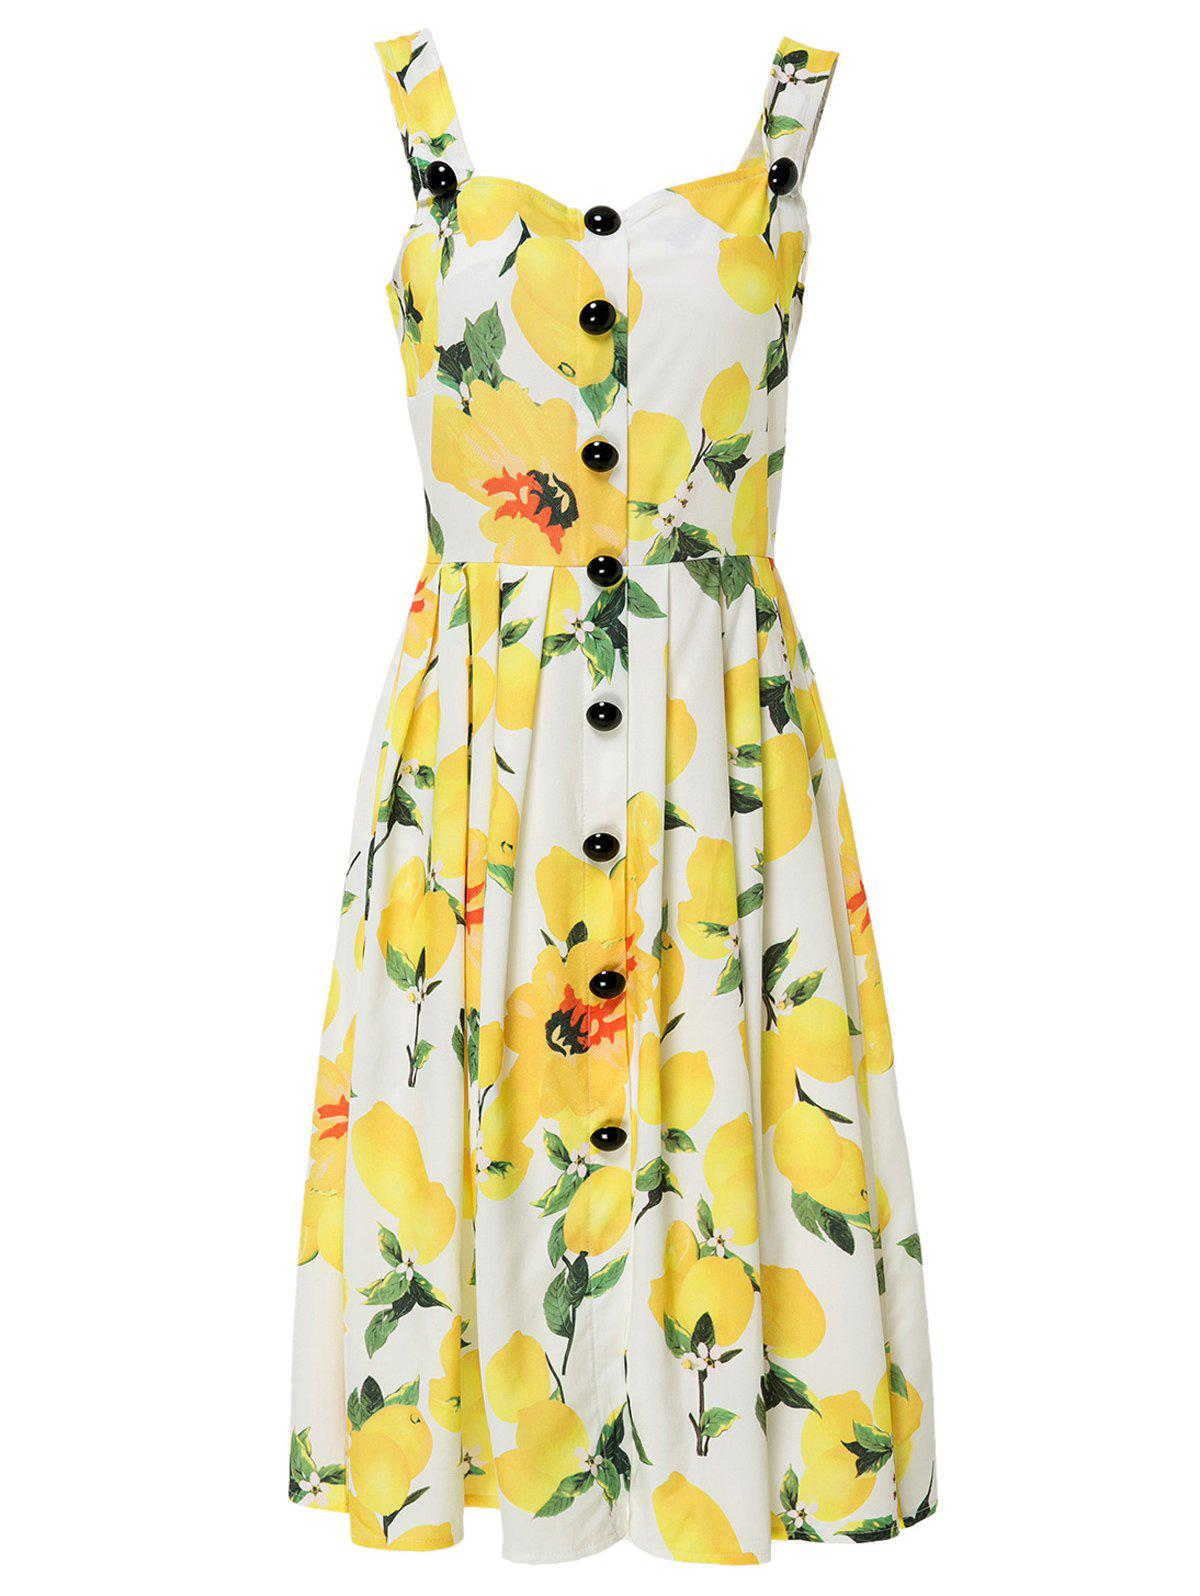 2018 Square Neck Sleeveless Lemon Print Midi Dress For